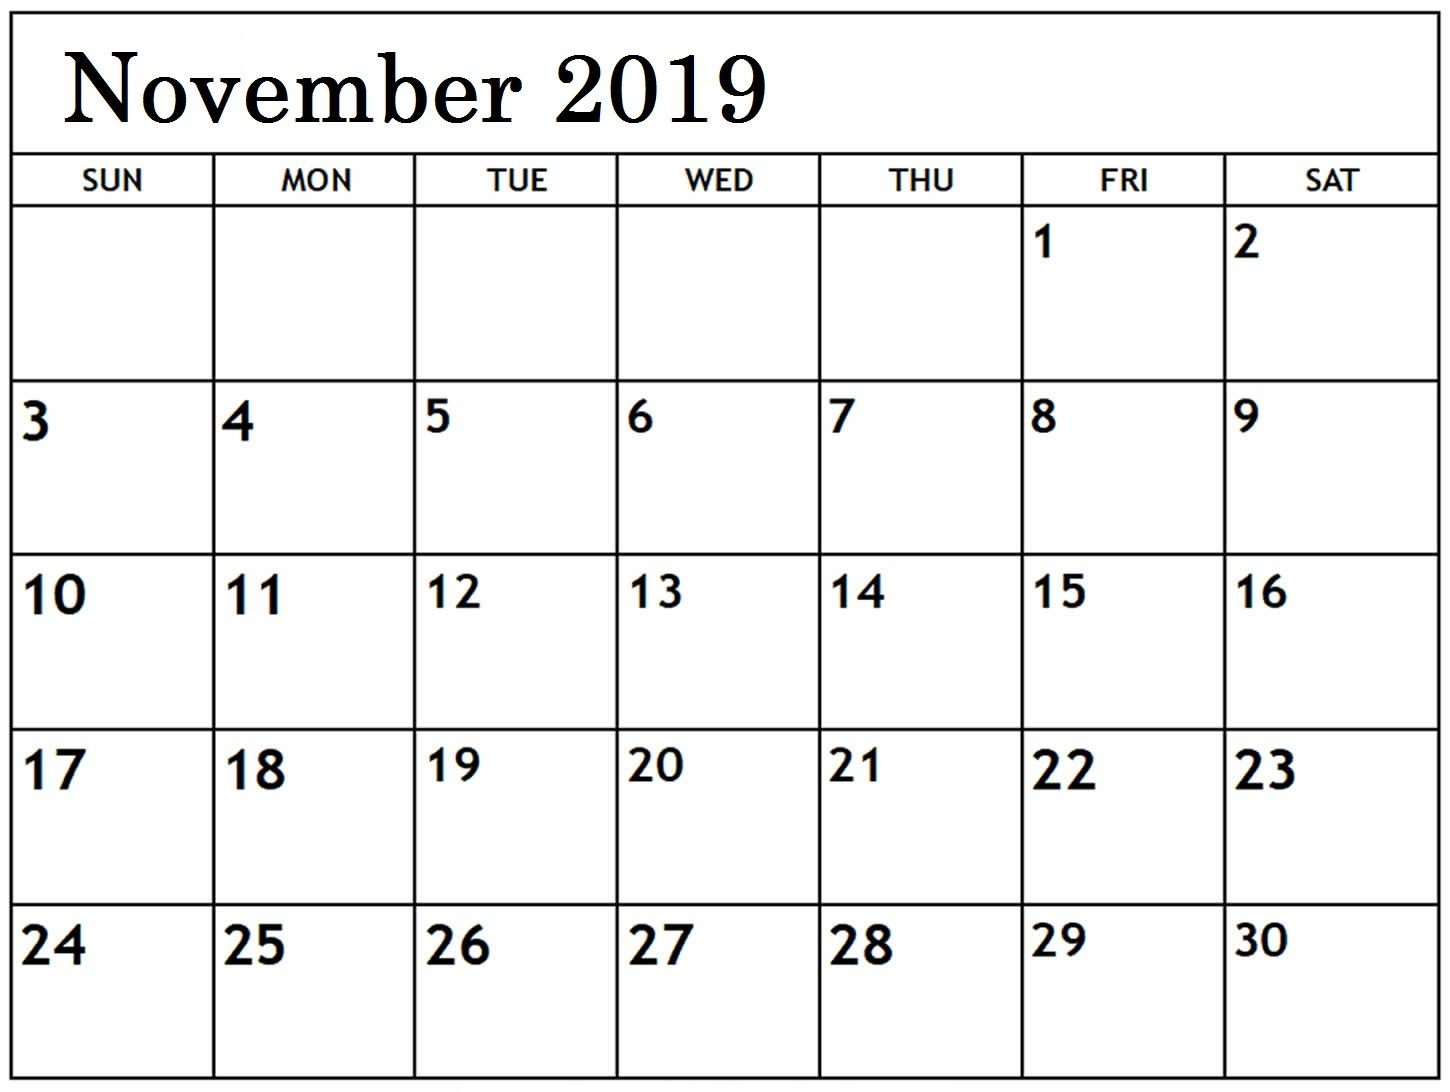 Free Editable November Calendar 2019 Blank Template I Need A Calendar I Can Edit And Print Out Free